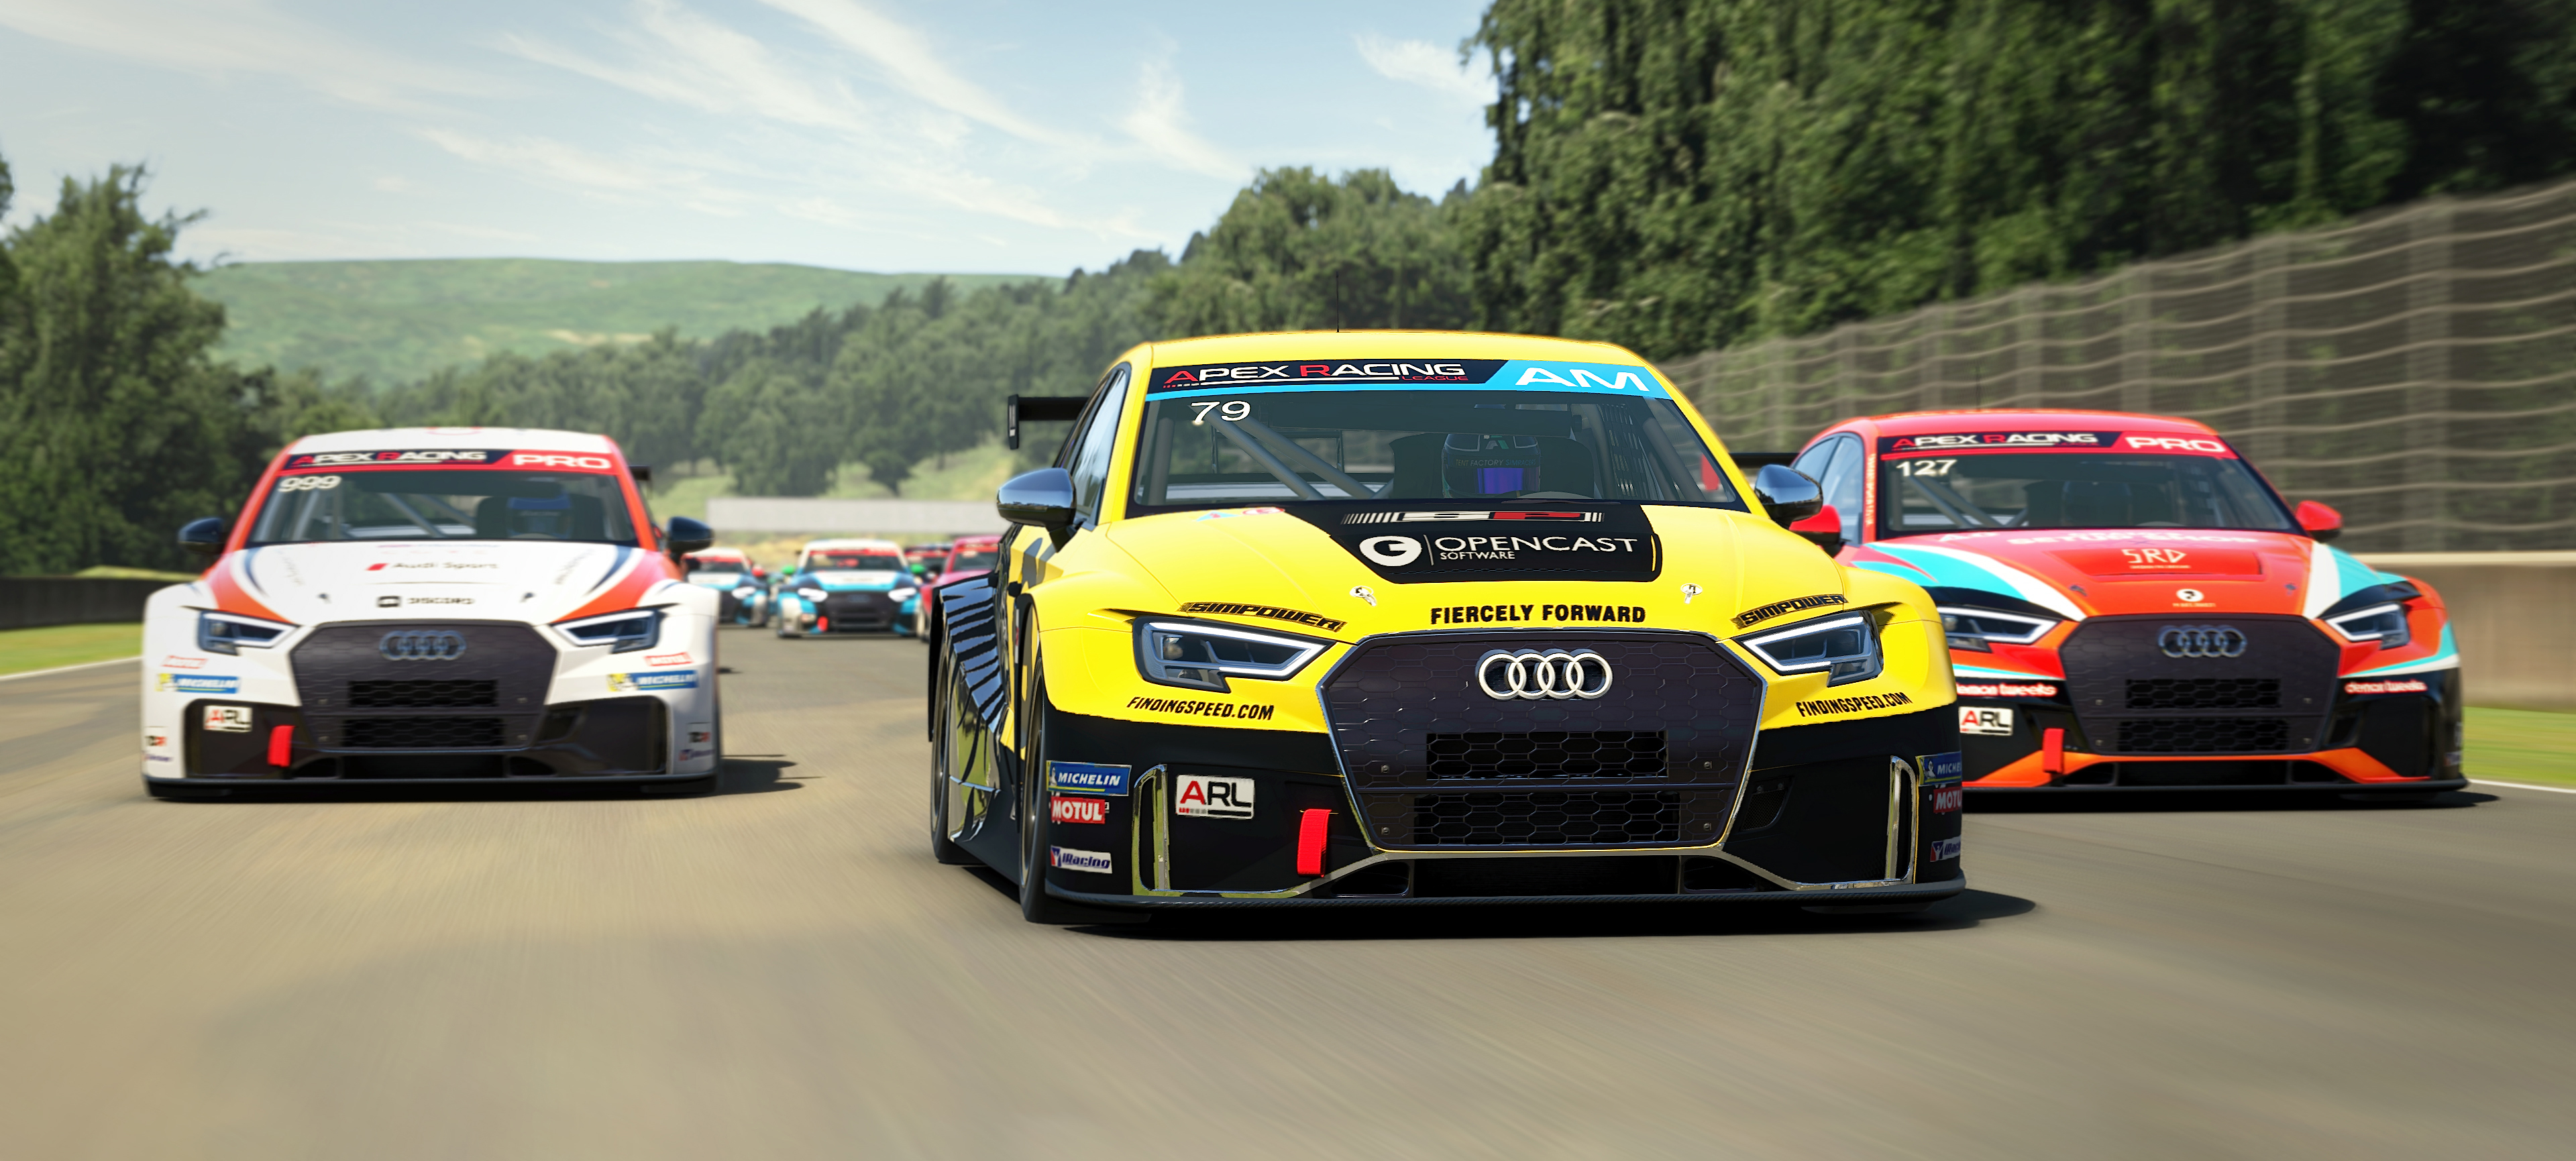 Apex Racing League Touring Car Championship | Round 3 at Barber Motorsports Park (Broadcast)